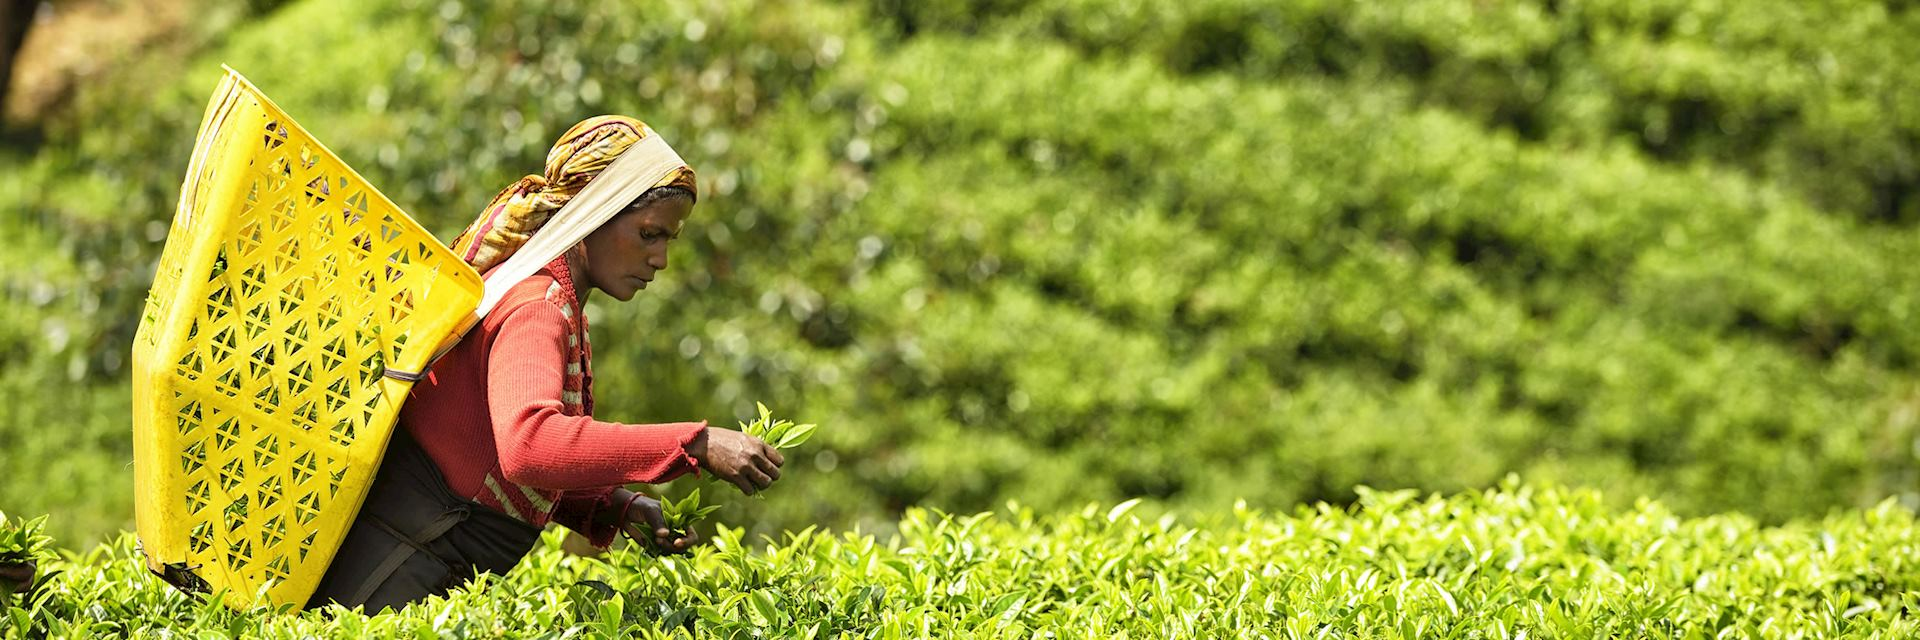 Tea picker in Nuwara Eliya, Sri Lanka